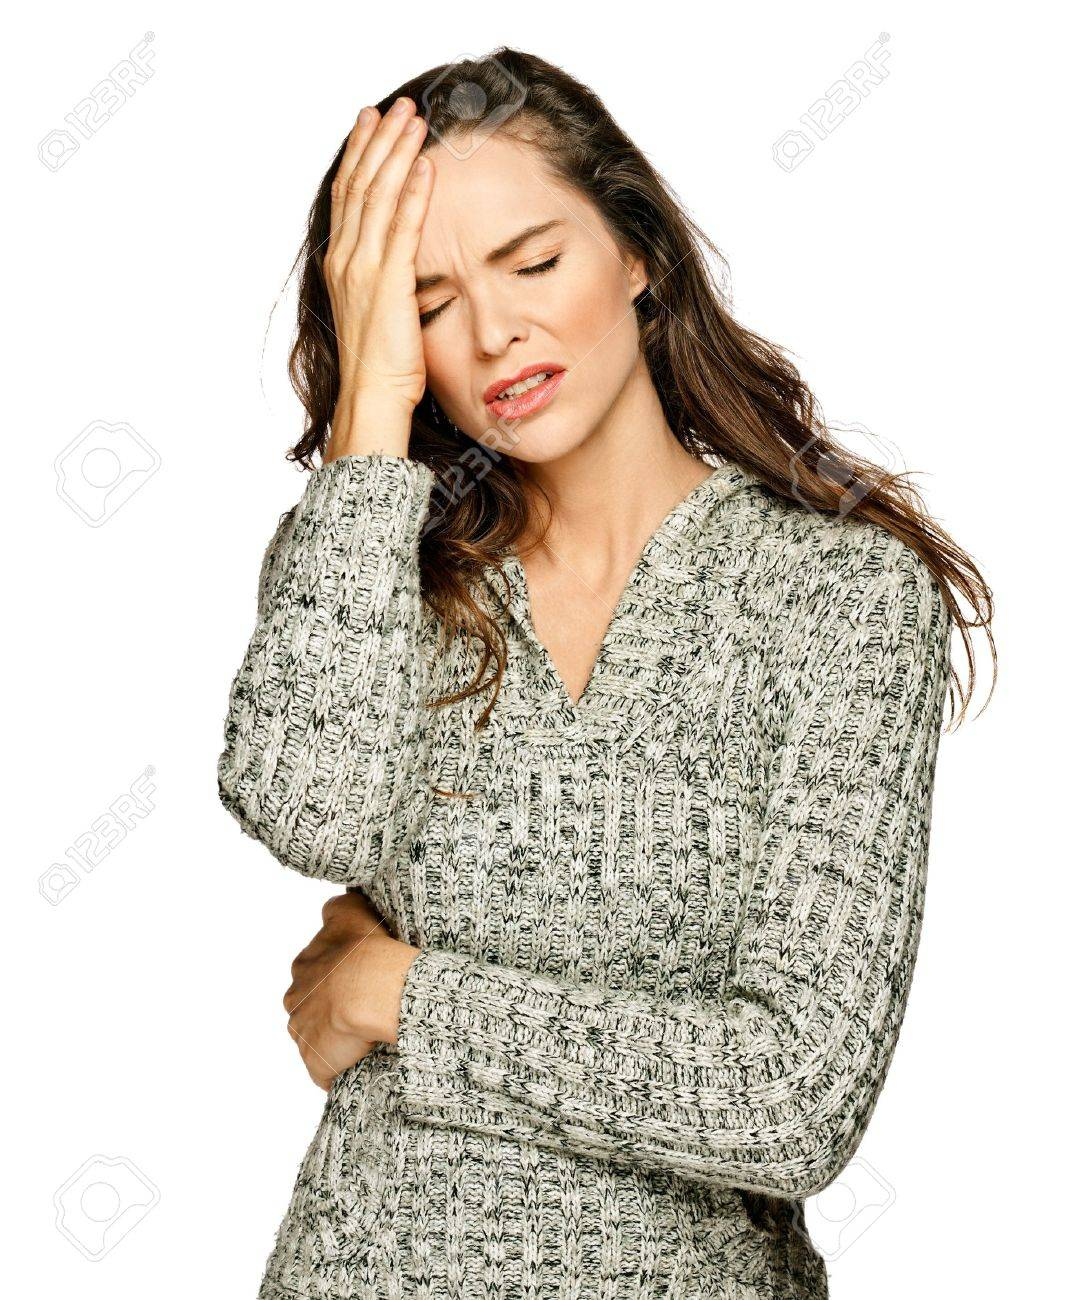 A young attractive woman suffering from illness or headache holding her head. Isolateed on white. Stock Photo - 7648858